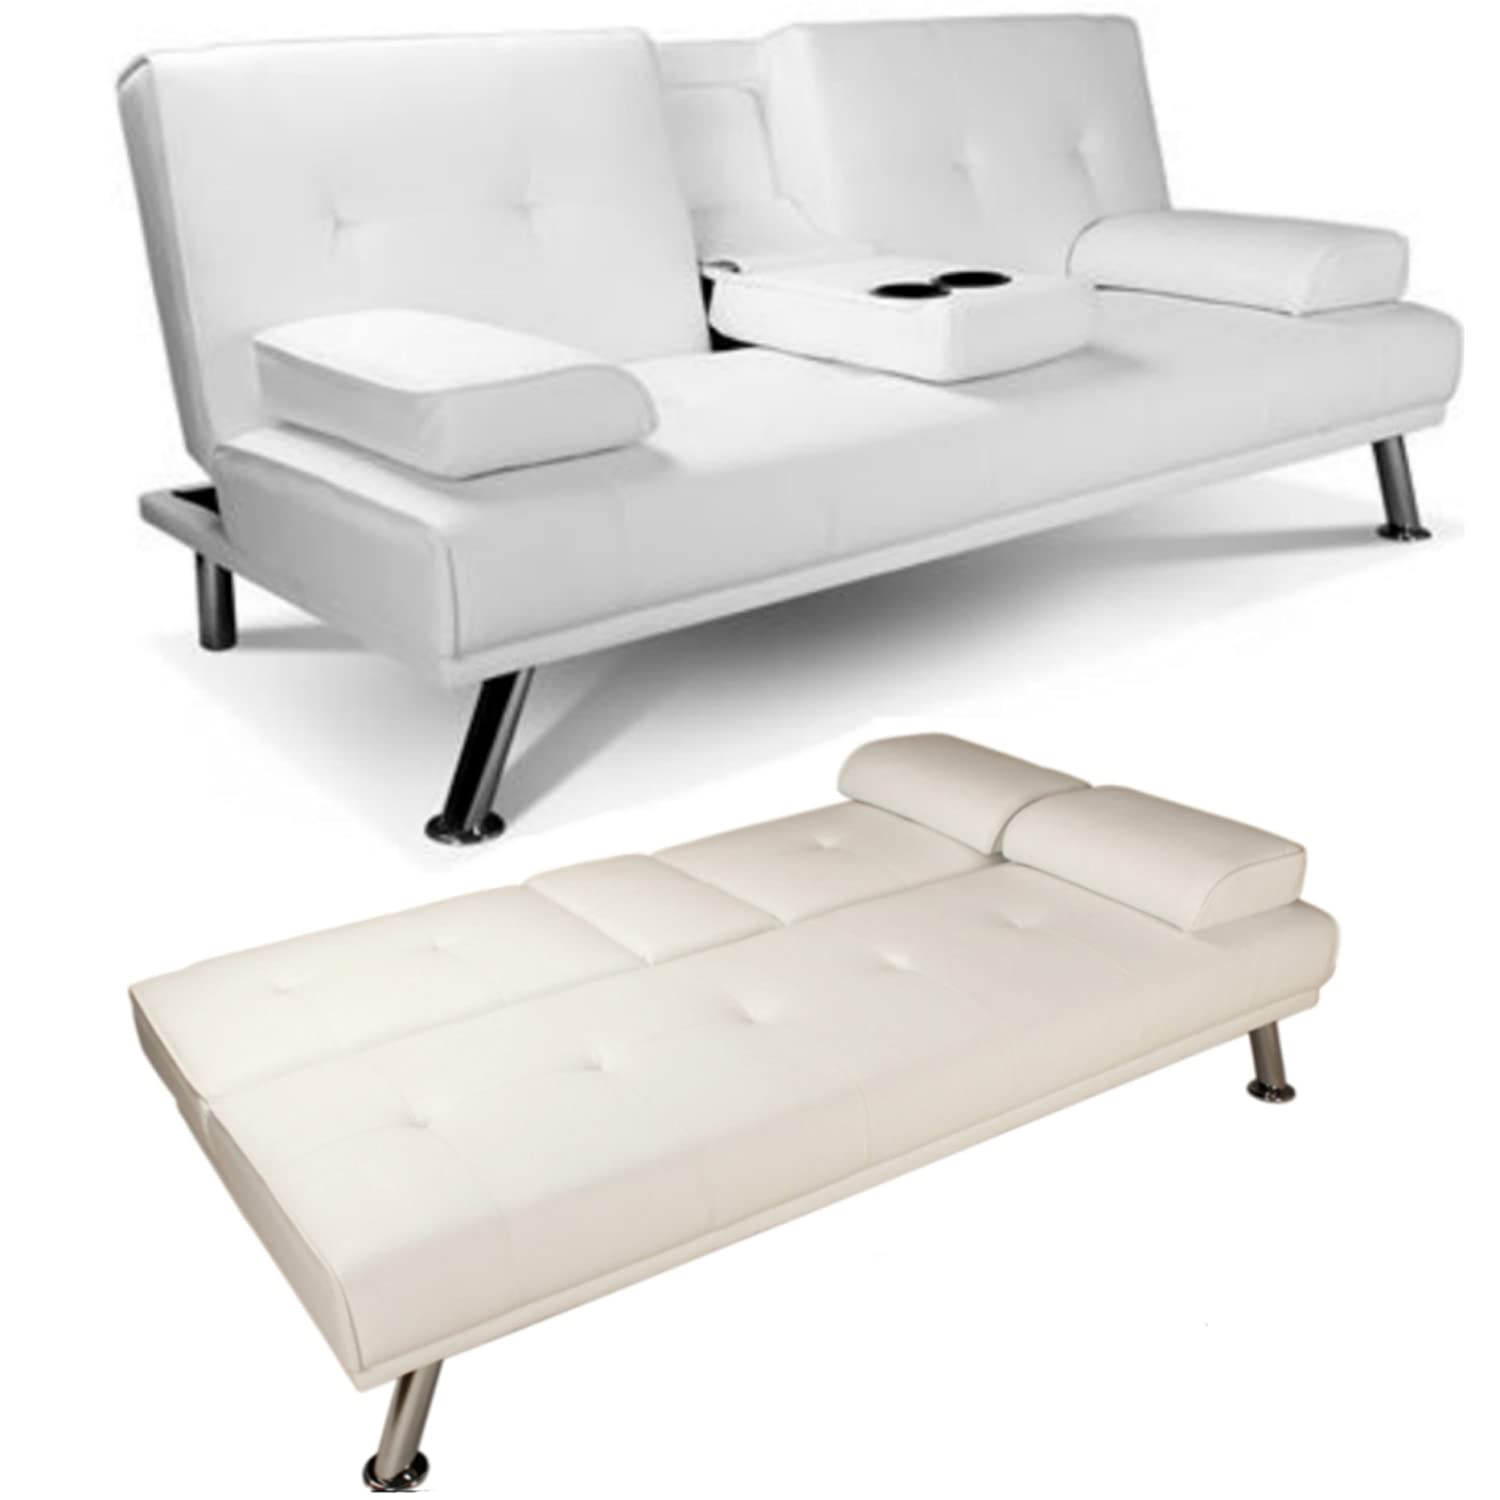 Pleasing White Faux Leather Sofa Bed Double Click Clack Settee 2 Seater 3 Seater Modern Living Room Couch Home Cinema Sofa 3 Position Drink Cup Holders Two Ibusinesslaw Wood Chair Design Ideas Ibusinesslaworg